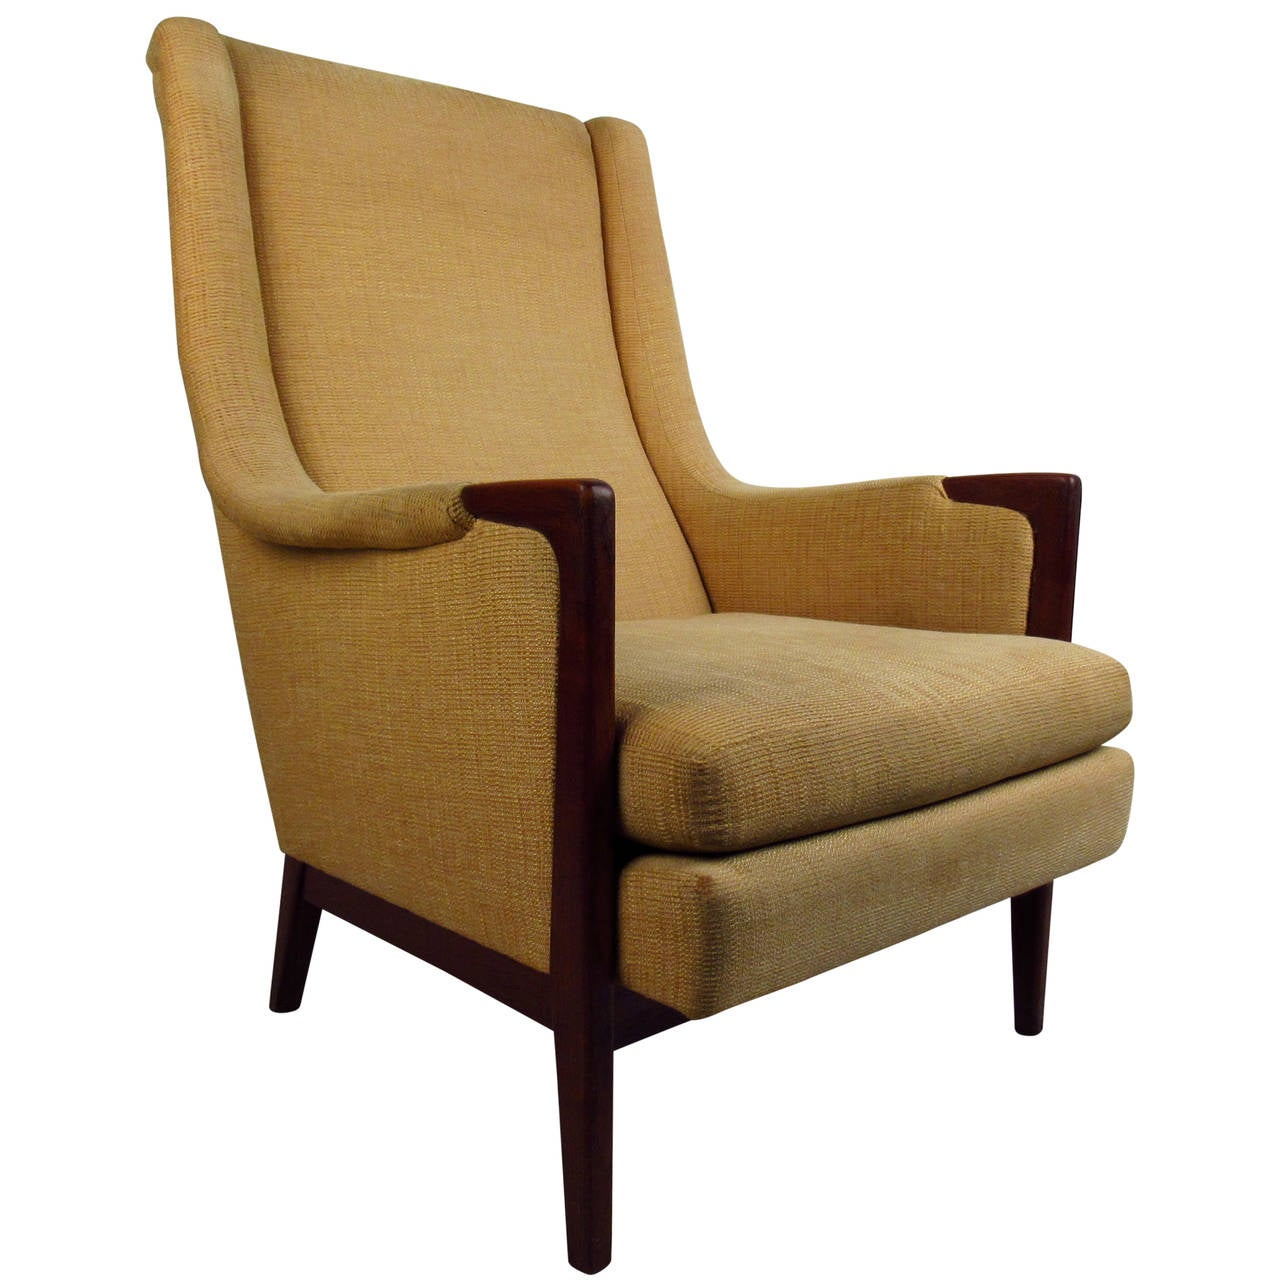 High back chair modern - Mid Century Modern High Back Lounge Chair 1